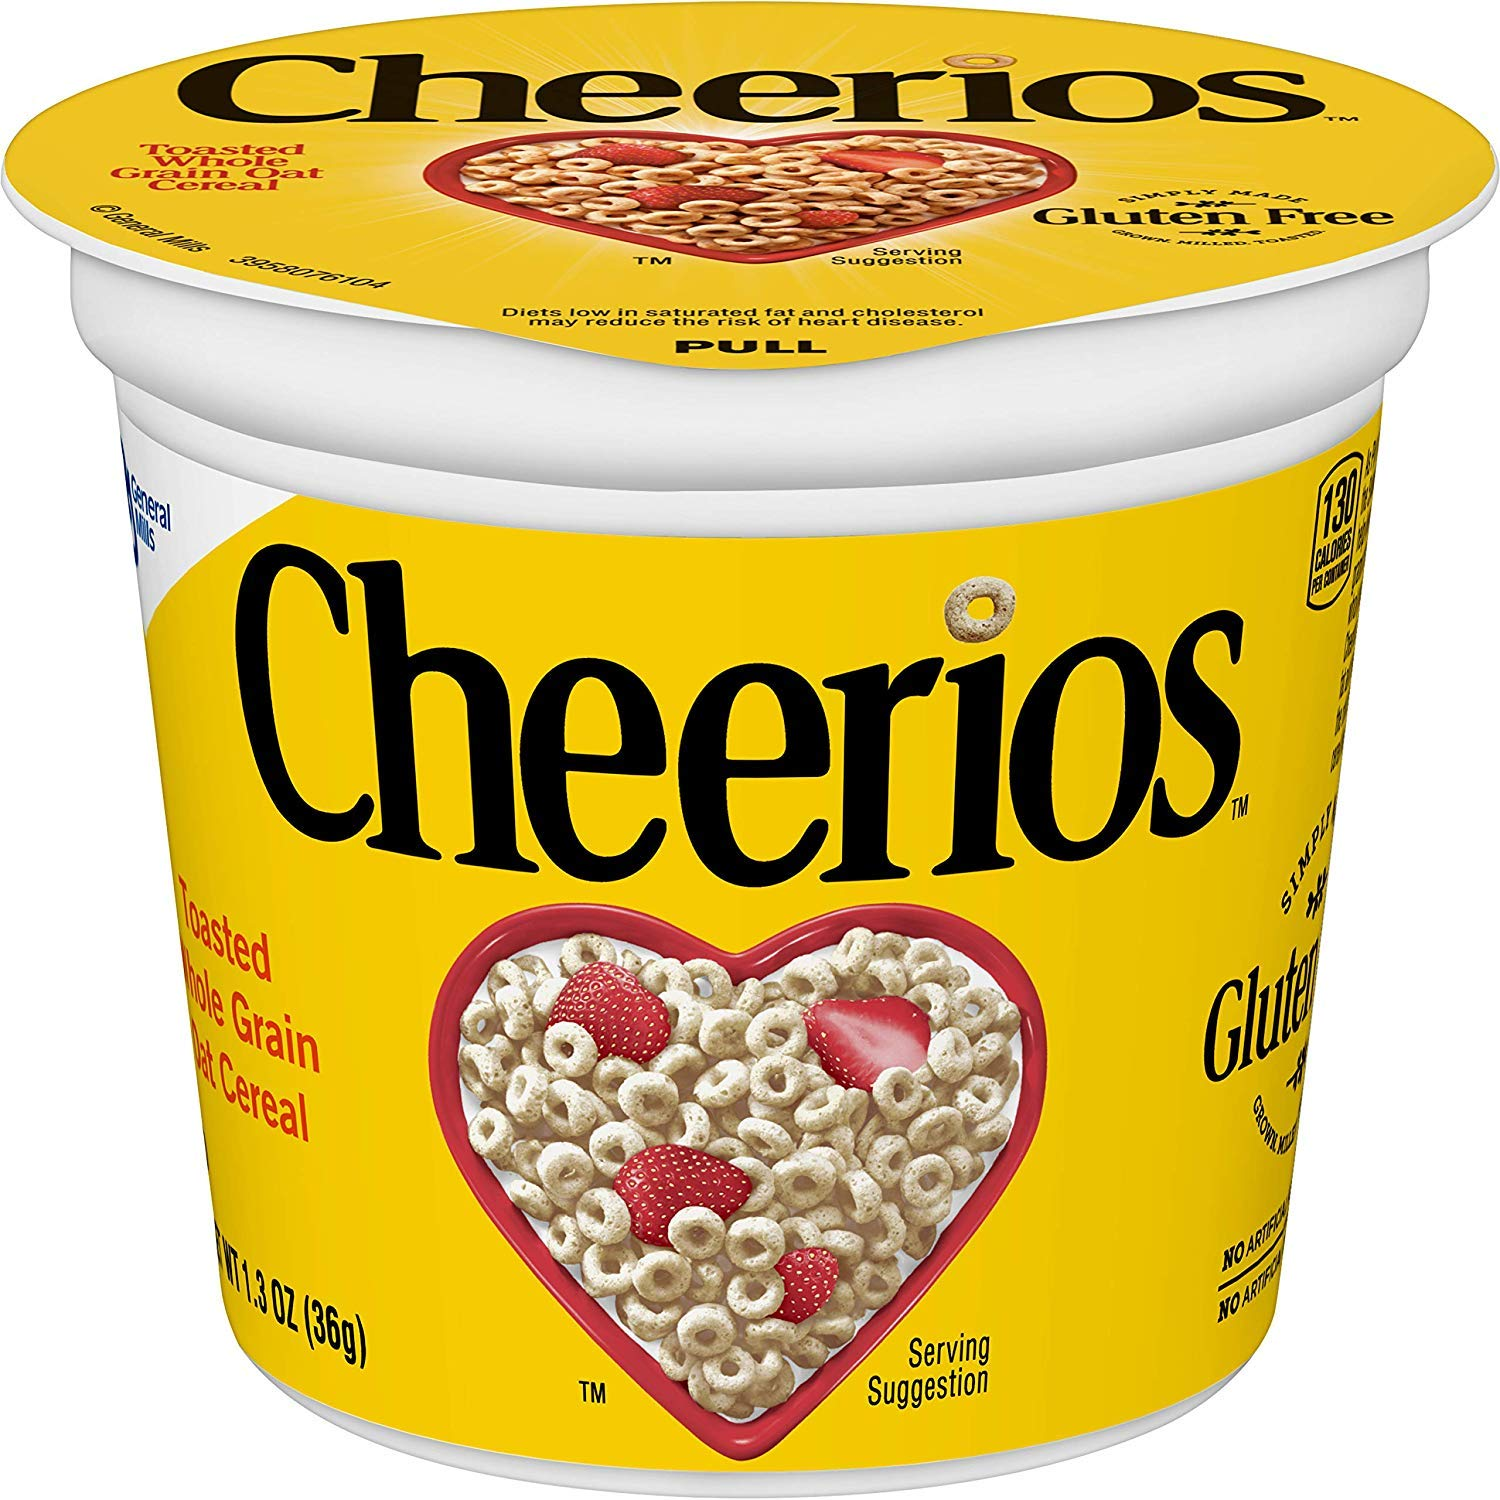 Cheerios Cereal Cup, Gluten Free Cereal, 1.3 oz (Pack of 12) (1.3 Ounce (Pack of 12) (2 pack of 12)) by General Mills Cereal